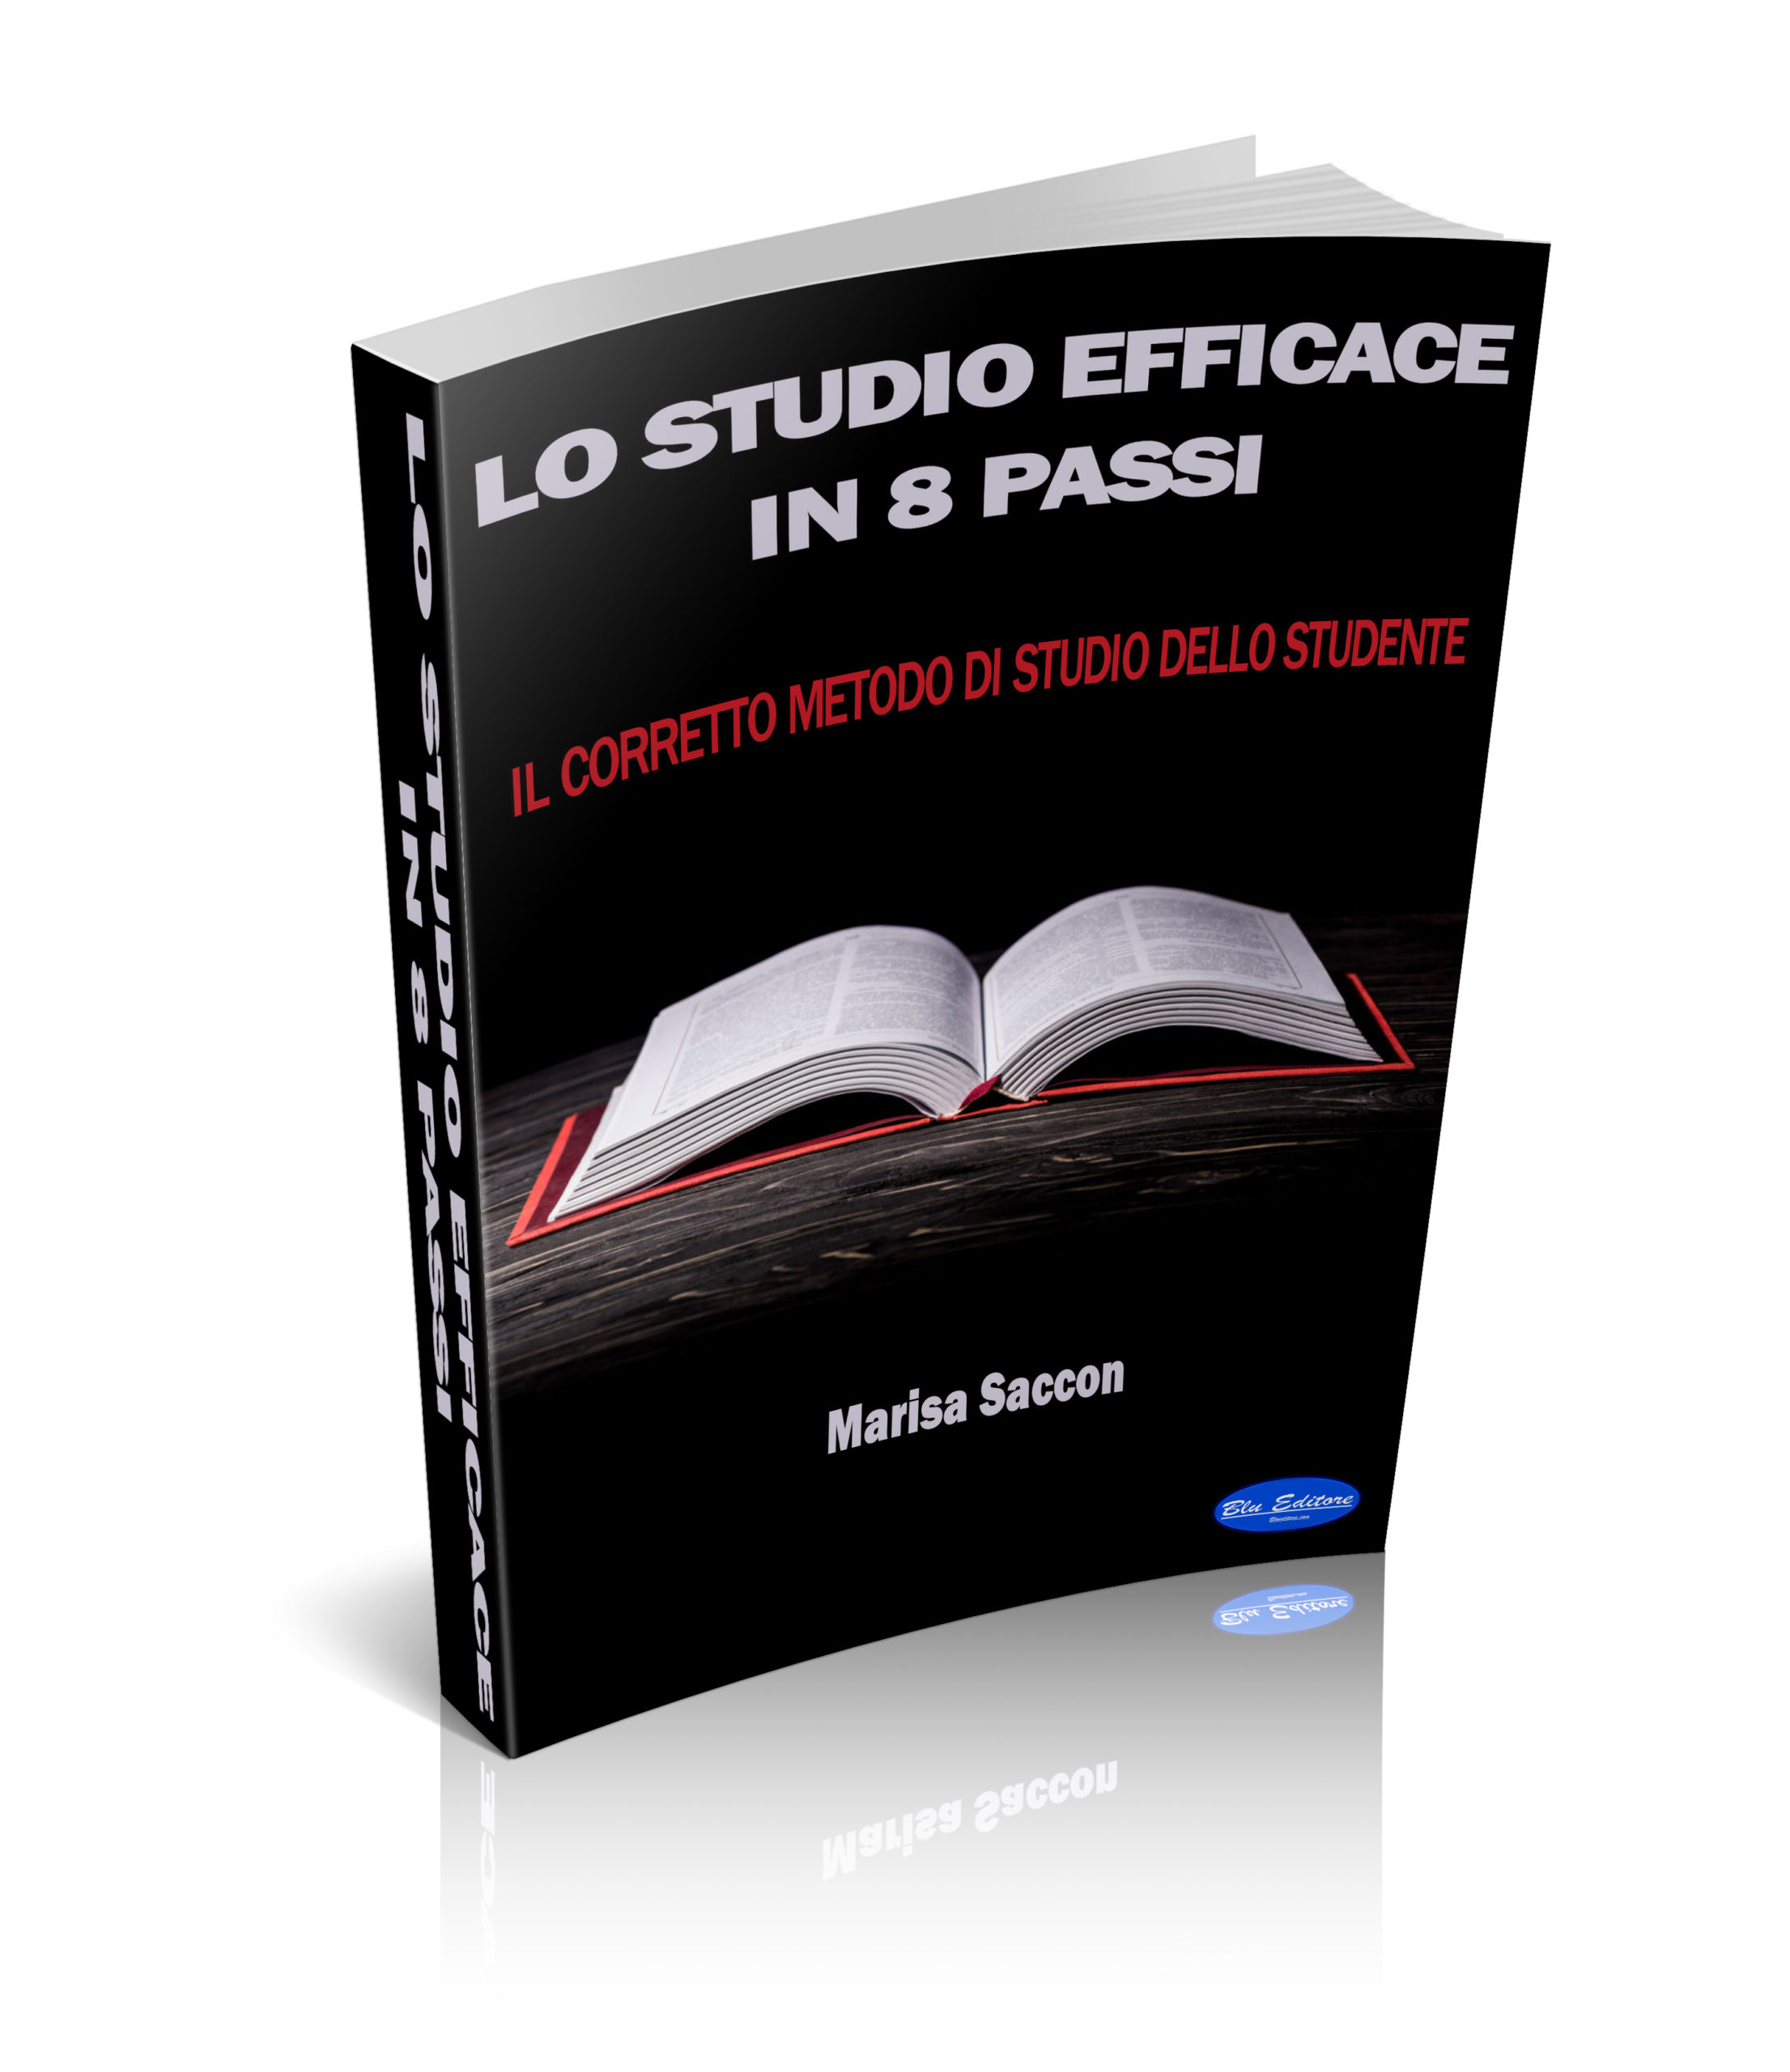 Lo Studio Efficace in 8 Passi